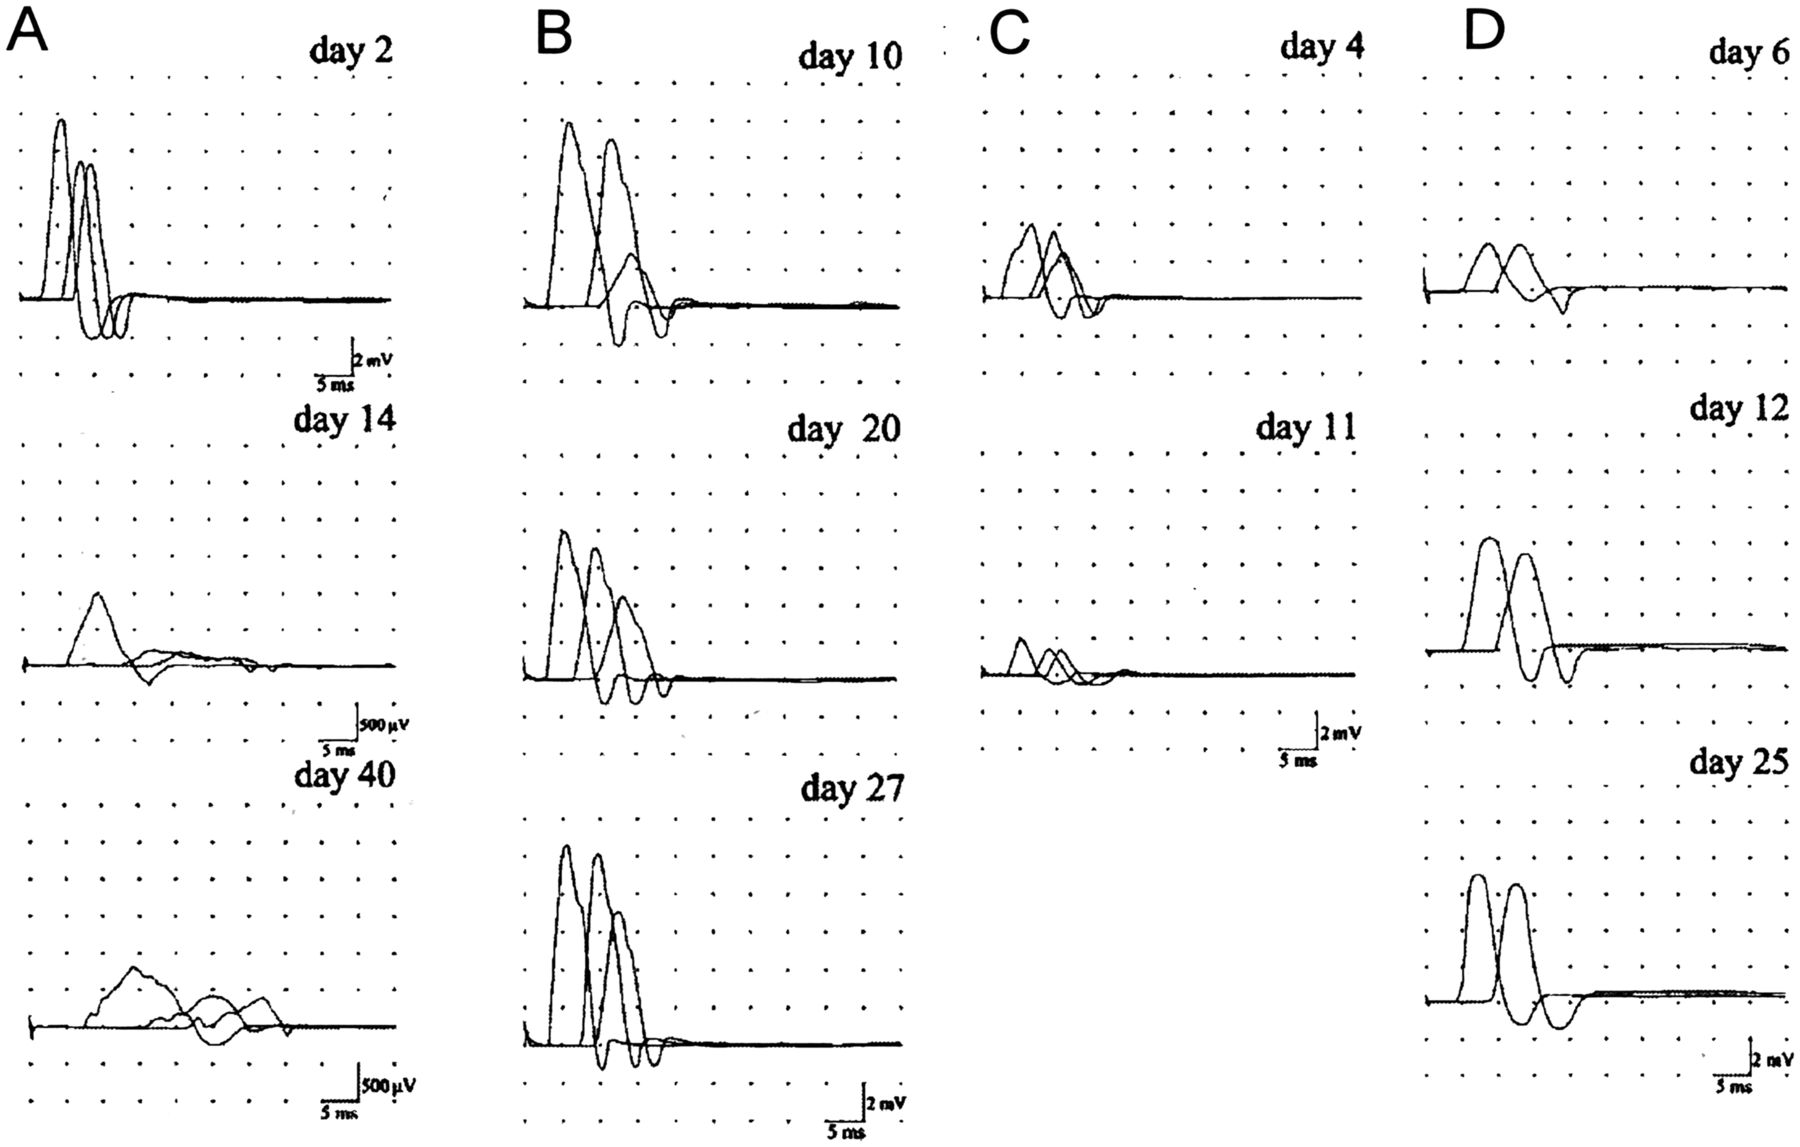 Nodopathies Of The Peripheral Nerve An Emerging Concept Journal 1980 B Tracker Wiring Diagram Schematic Download Figure